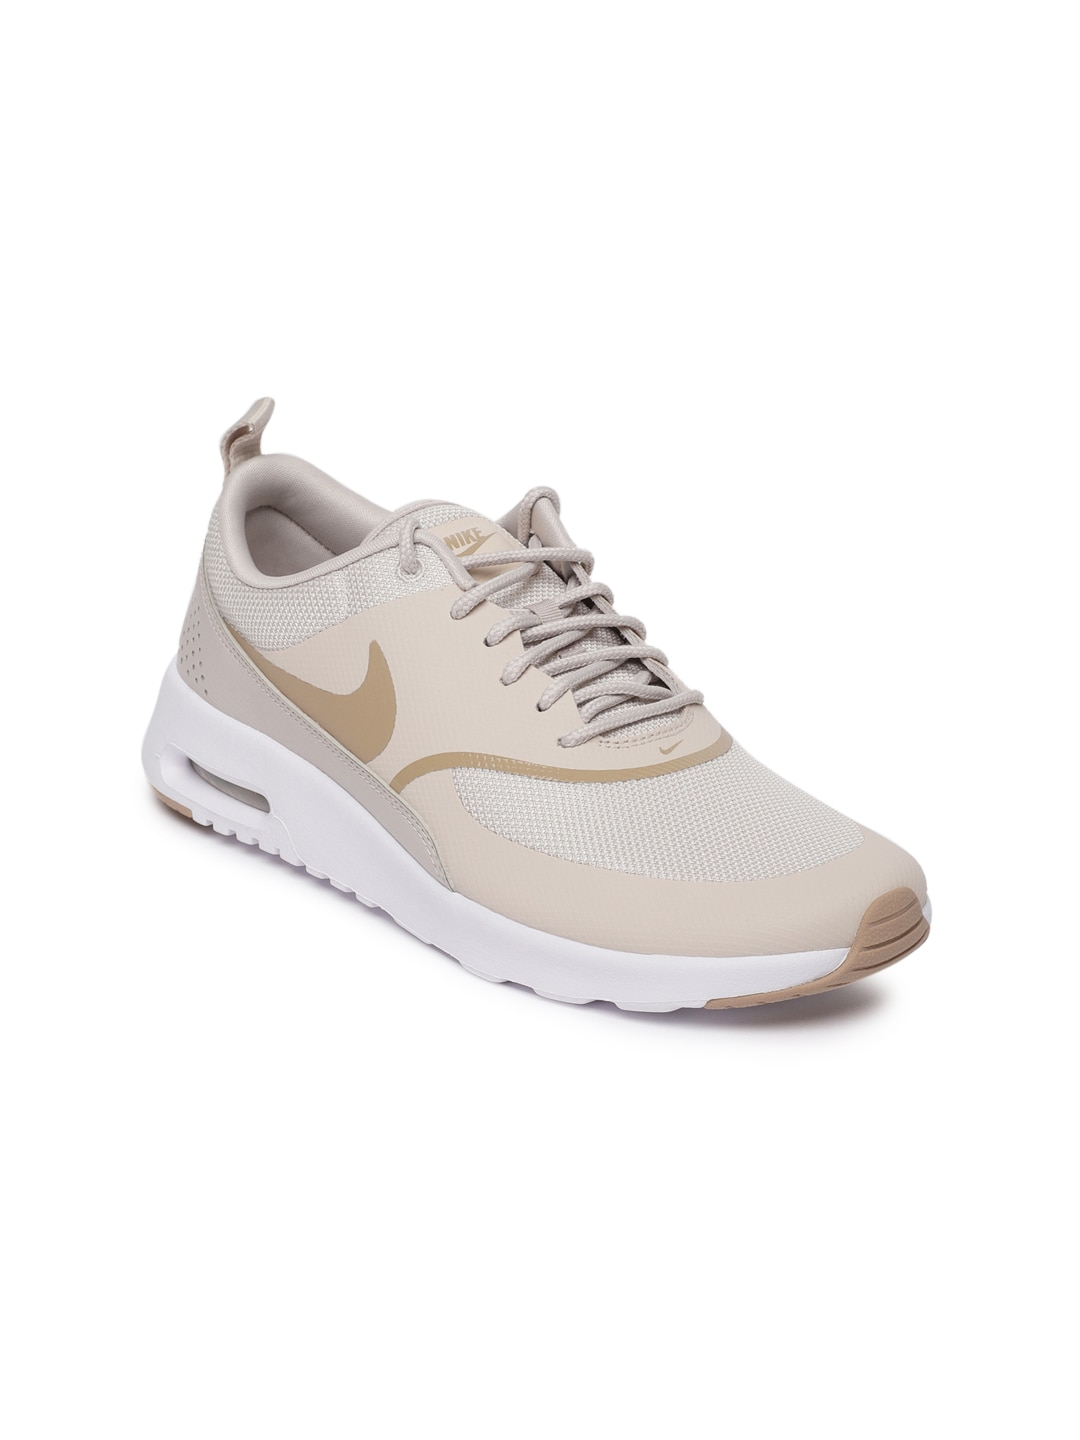 timeless design e9abb 68220 Air Max Thea Nike Shoes - Buy Air Max Thea Nike Shoes online